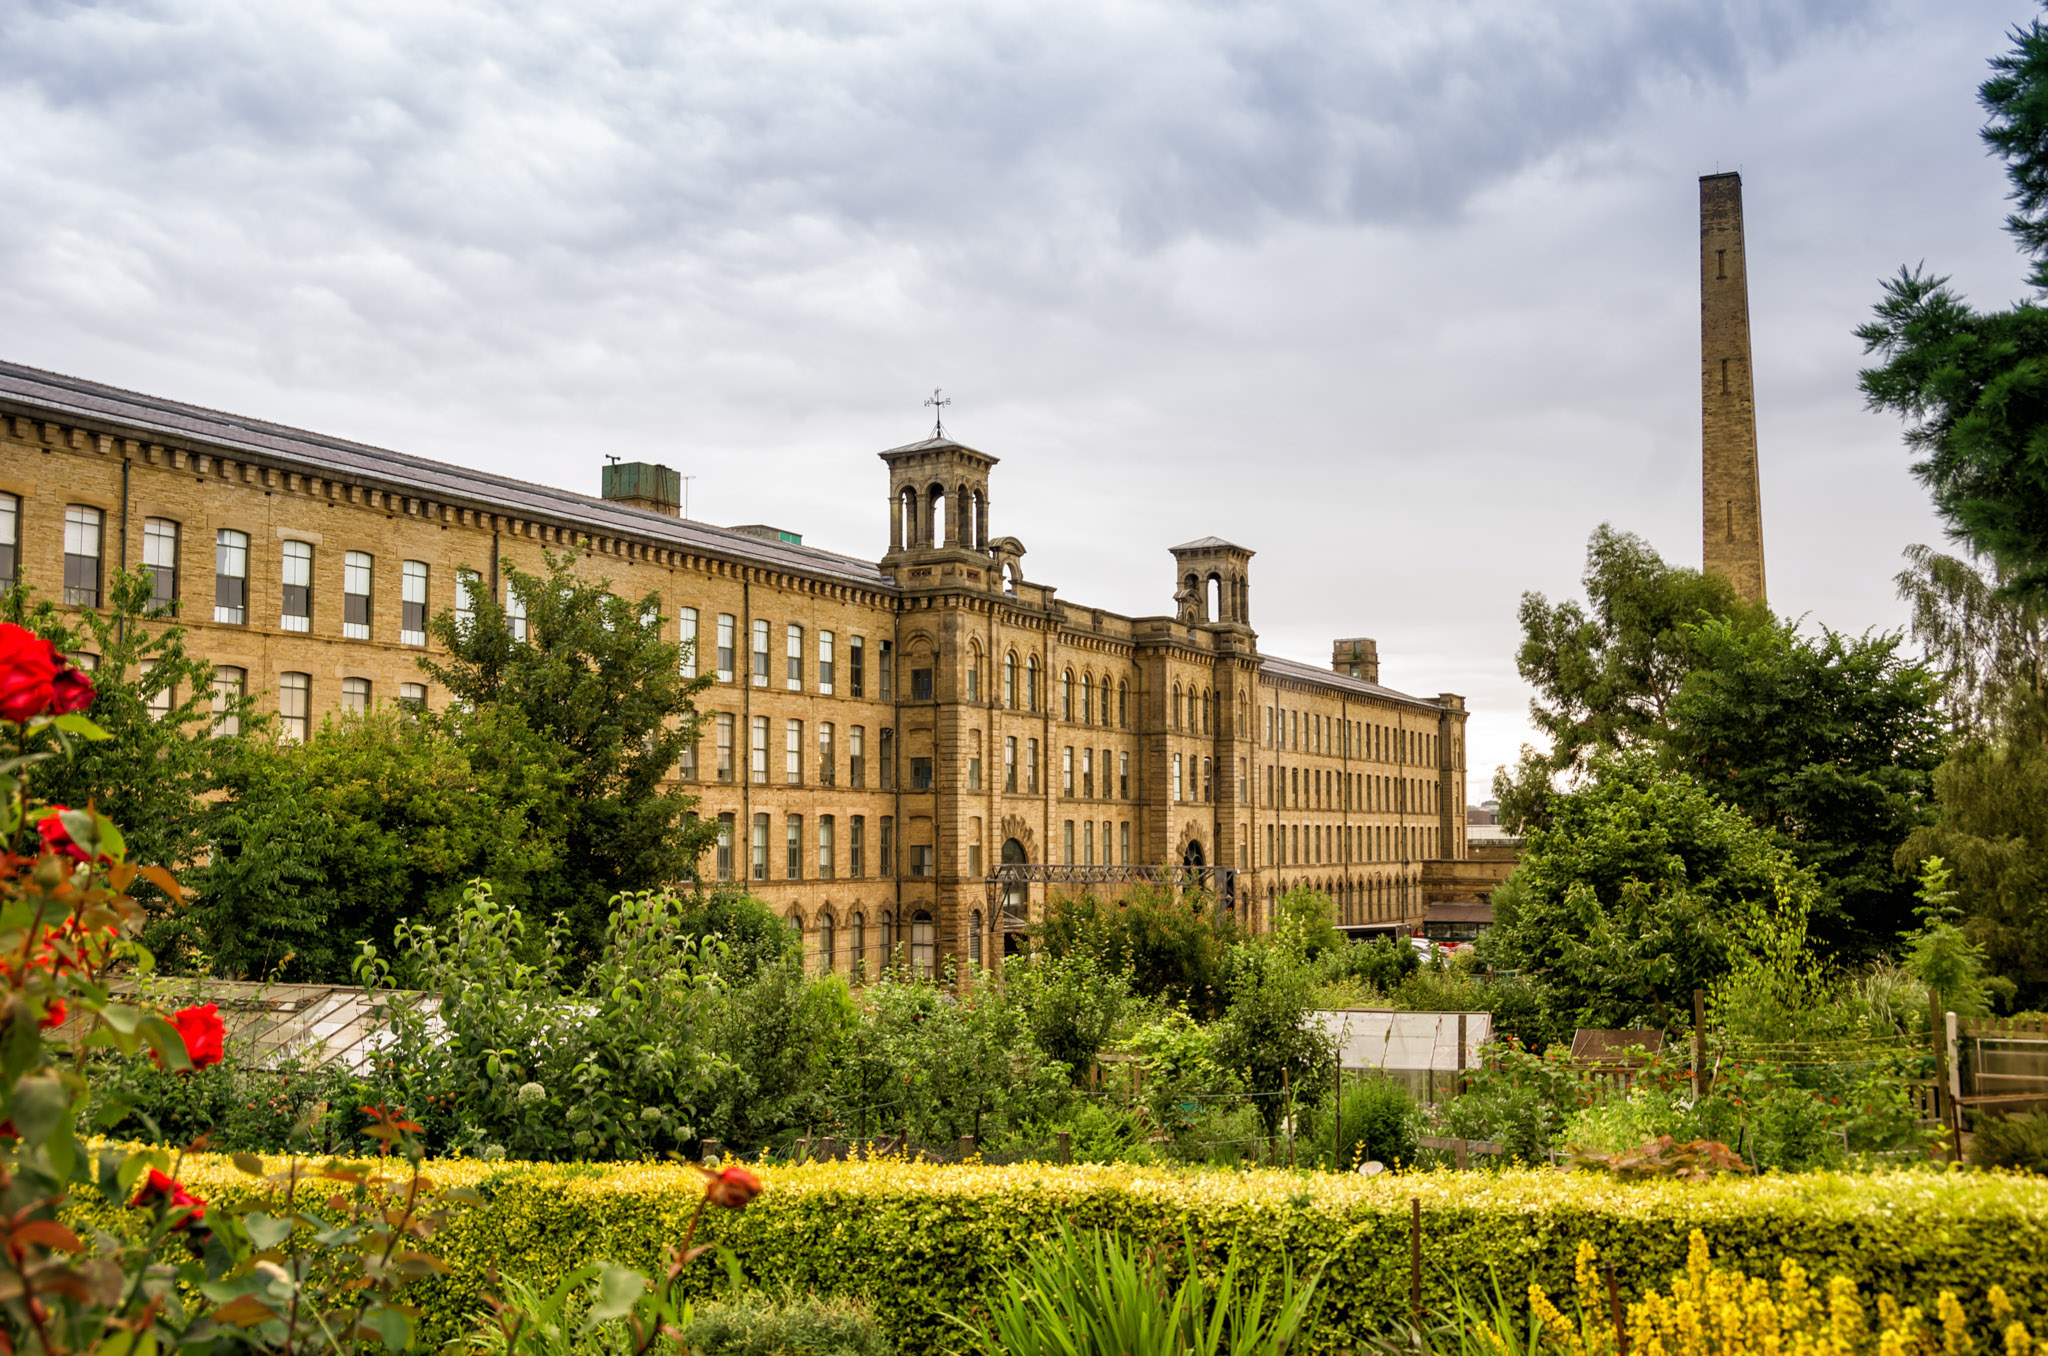 Saltaire, England